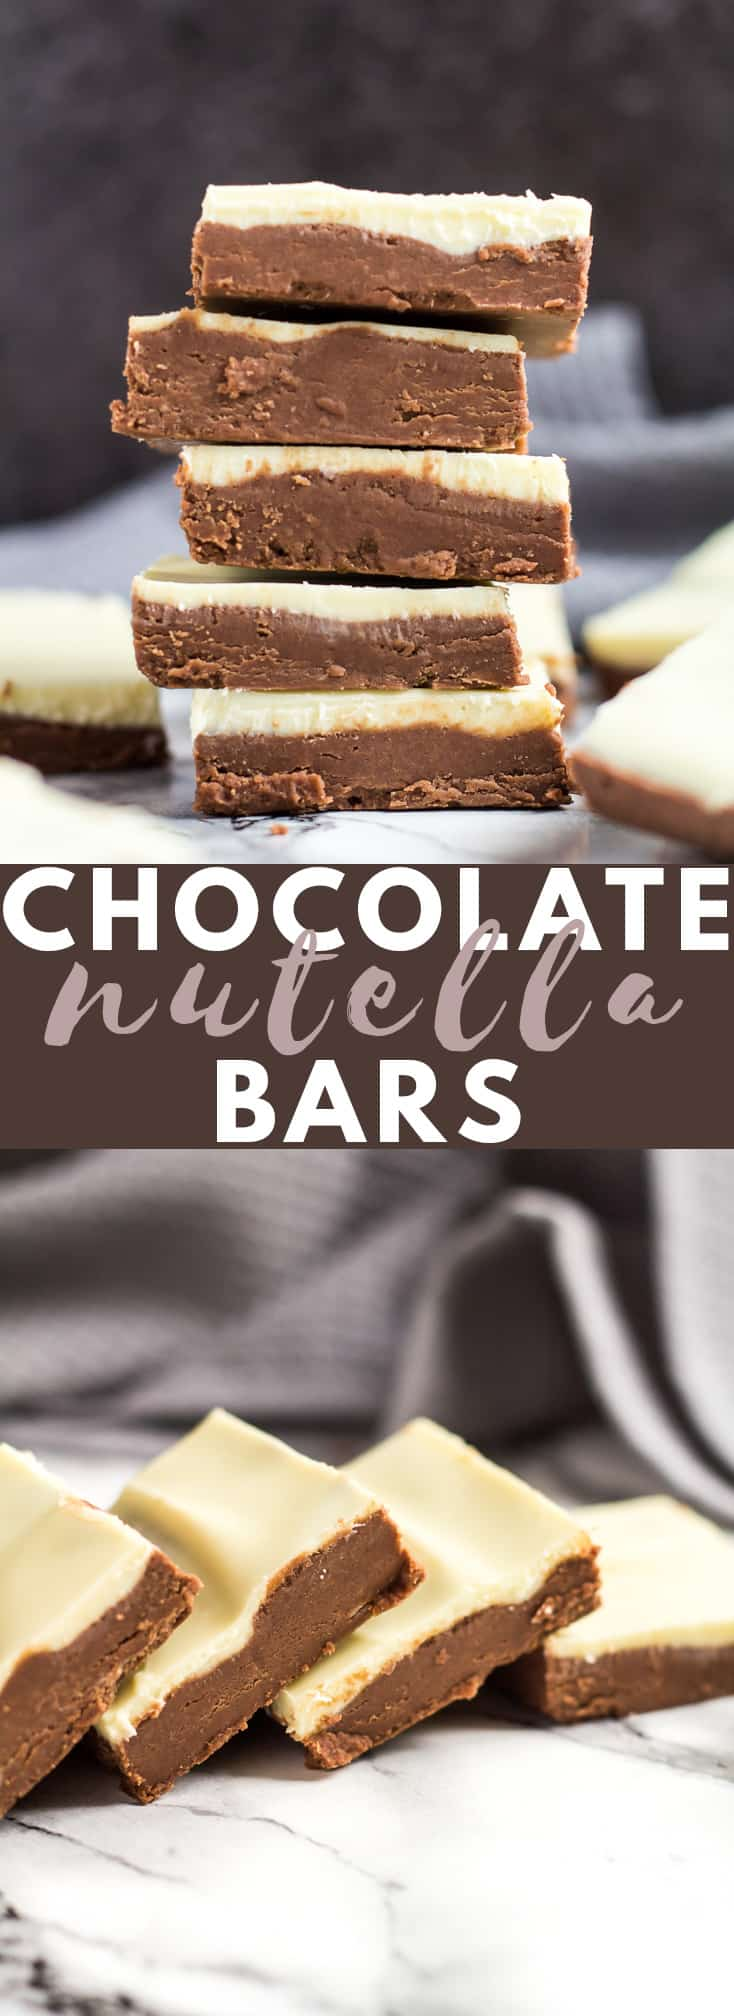 No-Bake White Chocolate Nutella Bars - Deliciously creamy and fudgy no-bake Nutella bars topped with white chocolate. A perfect quick and easy chocolate treat! #chocolate #nutella #nobake #nutellarecipes